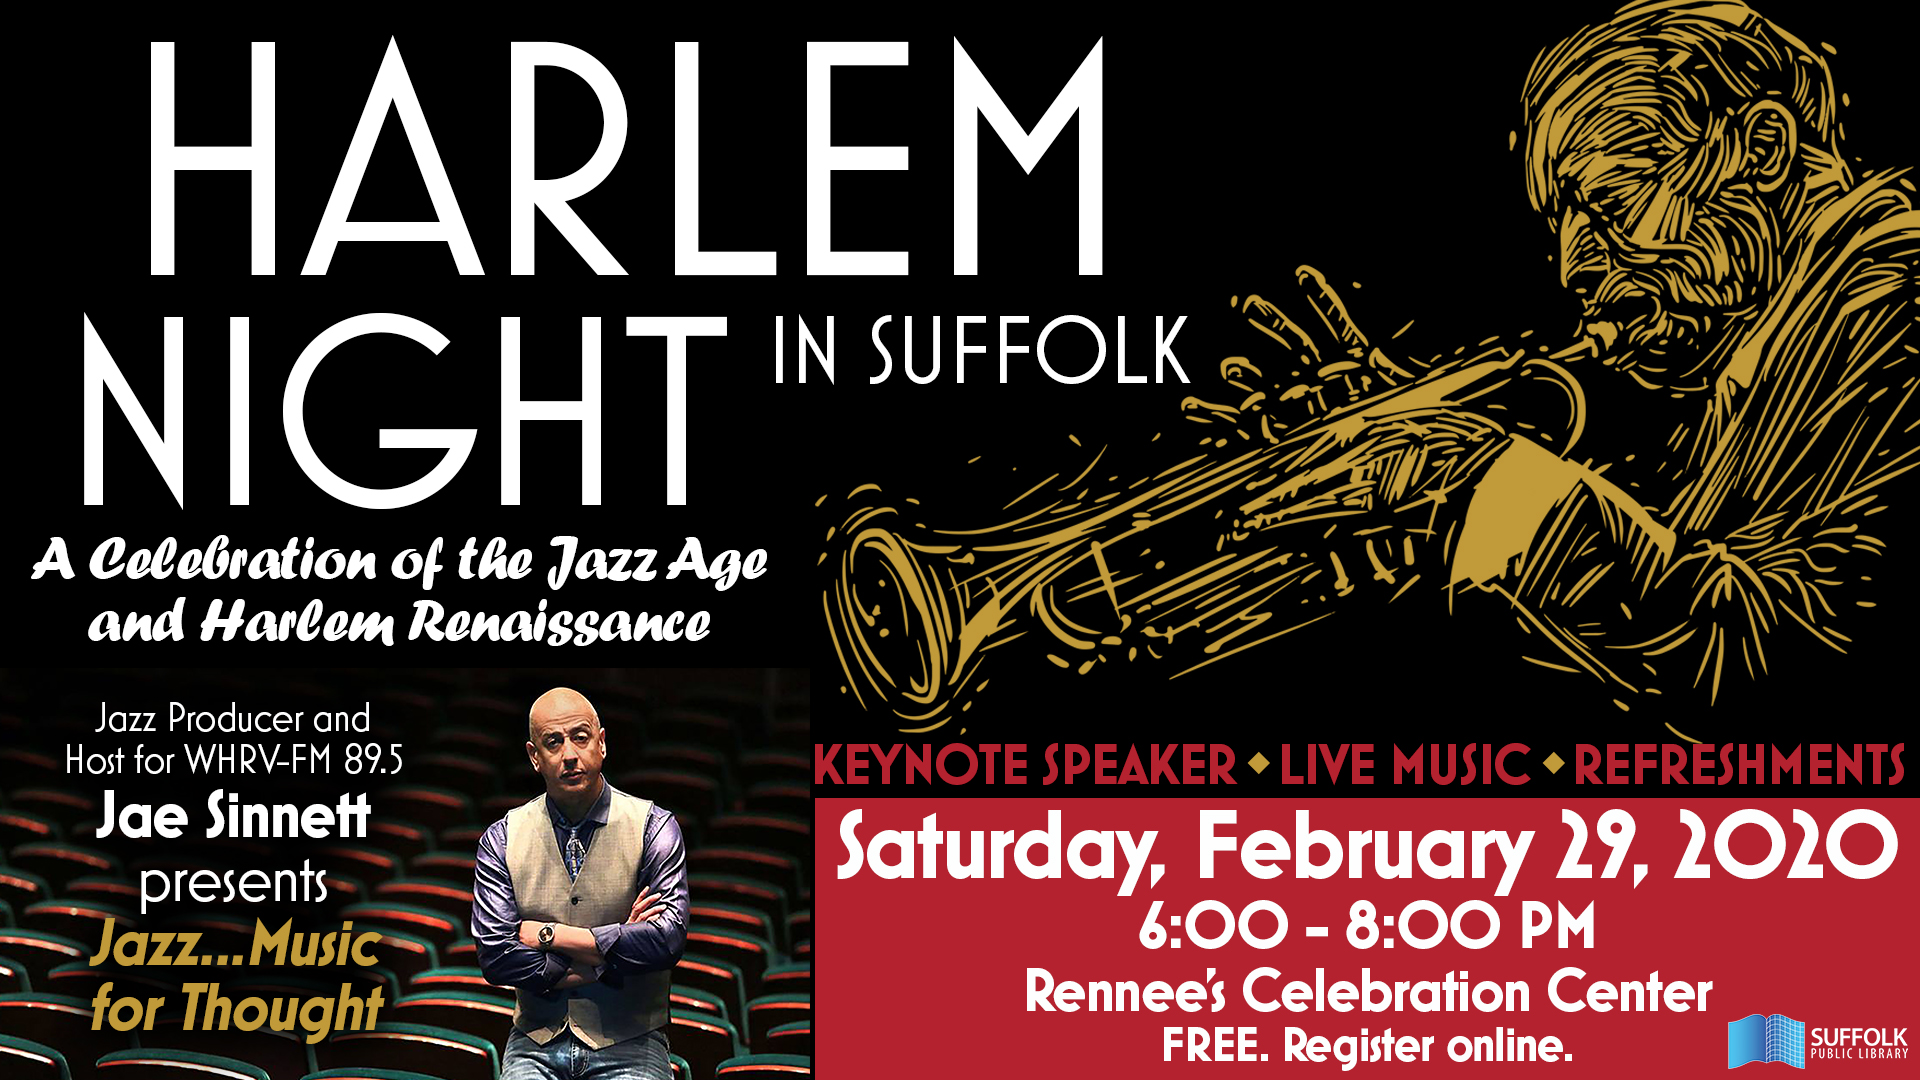 Harlem Night in Suffolk: A Celebration of the Jazz Age and Harlem Renaissance